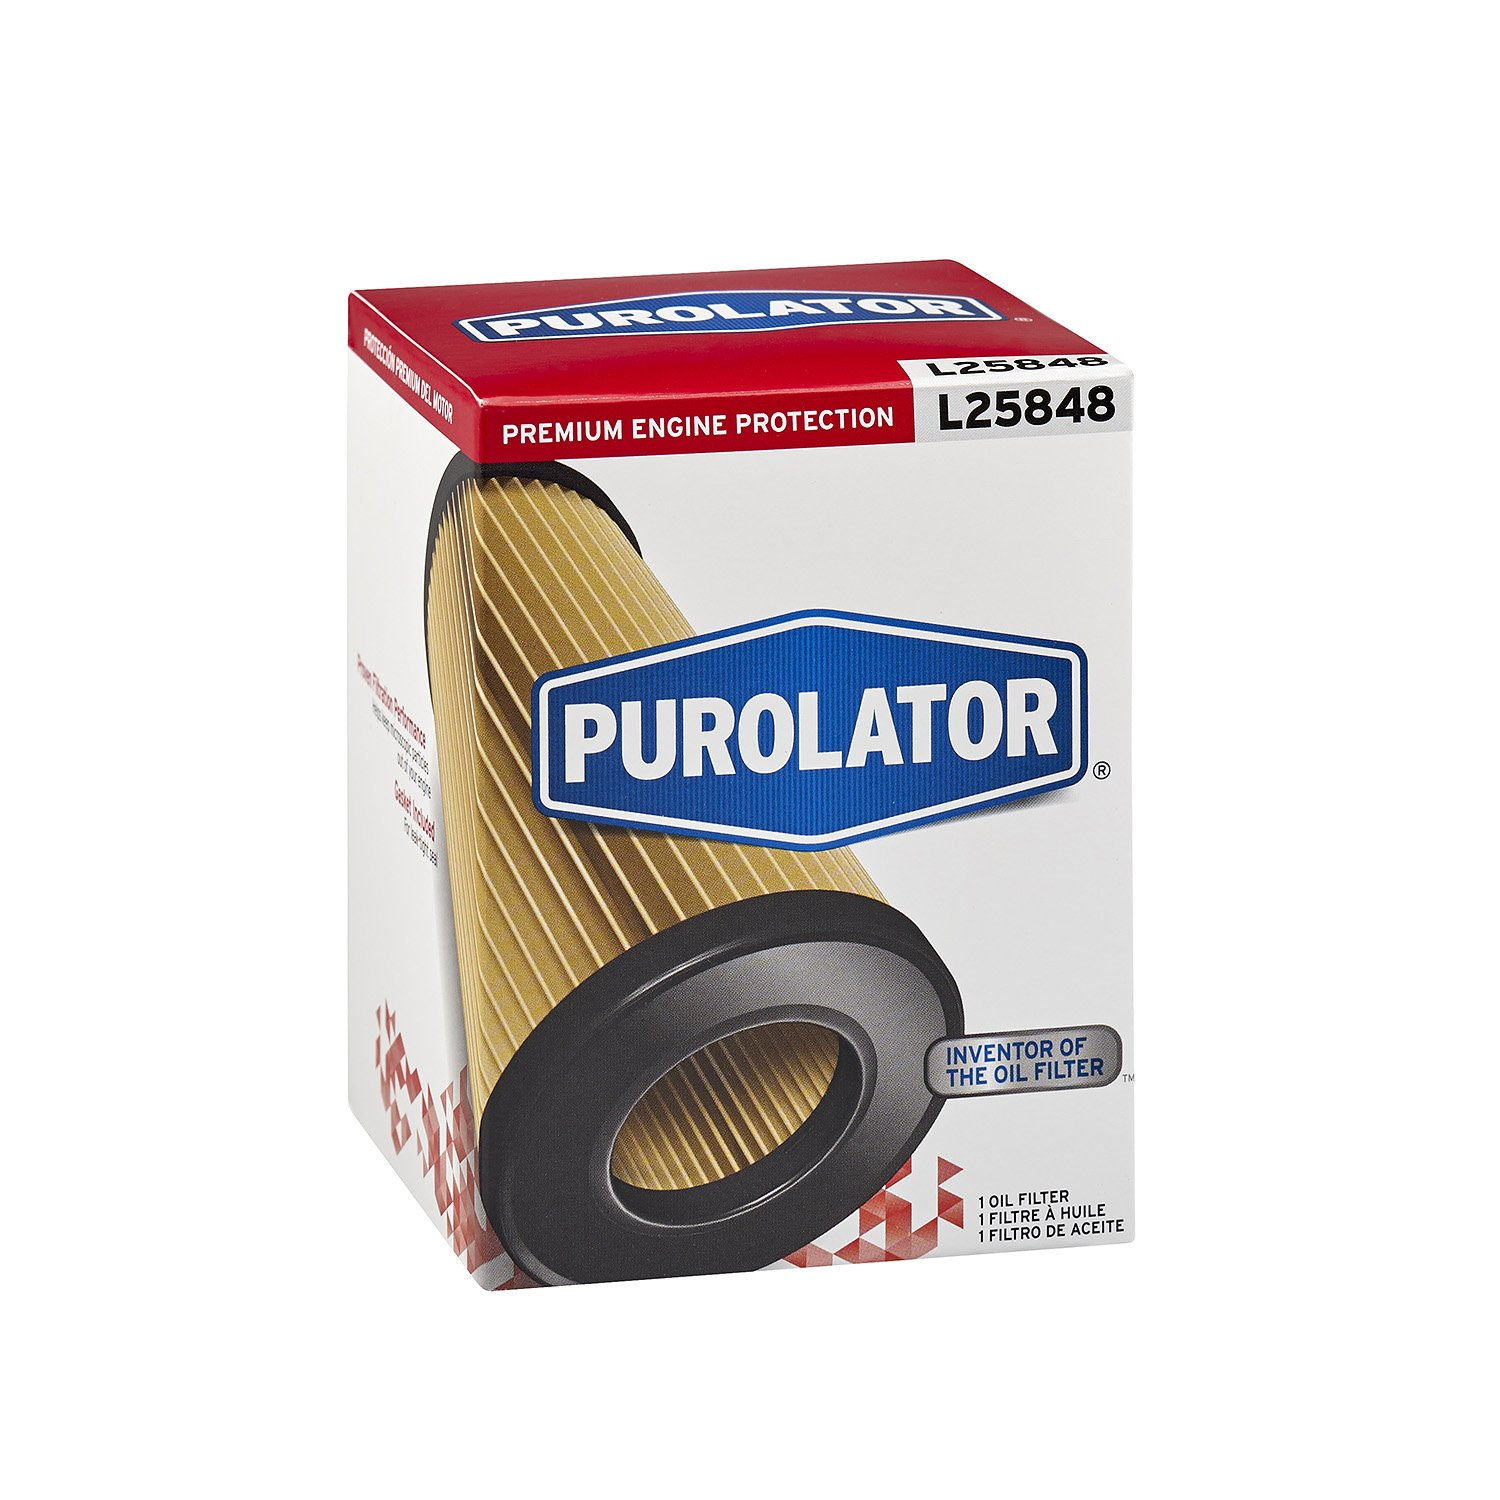 Purolator L25848 Classic Oil Filter